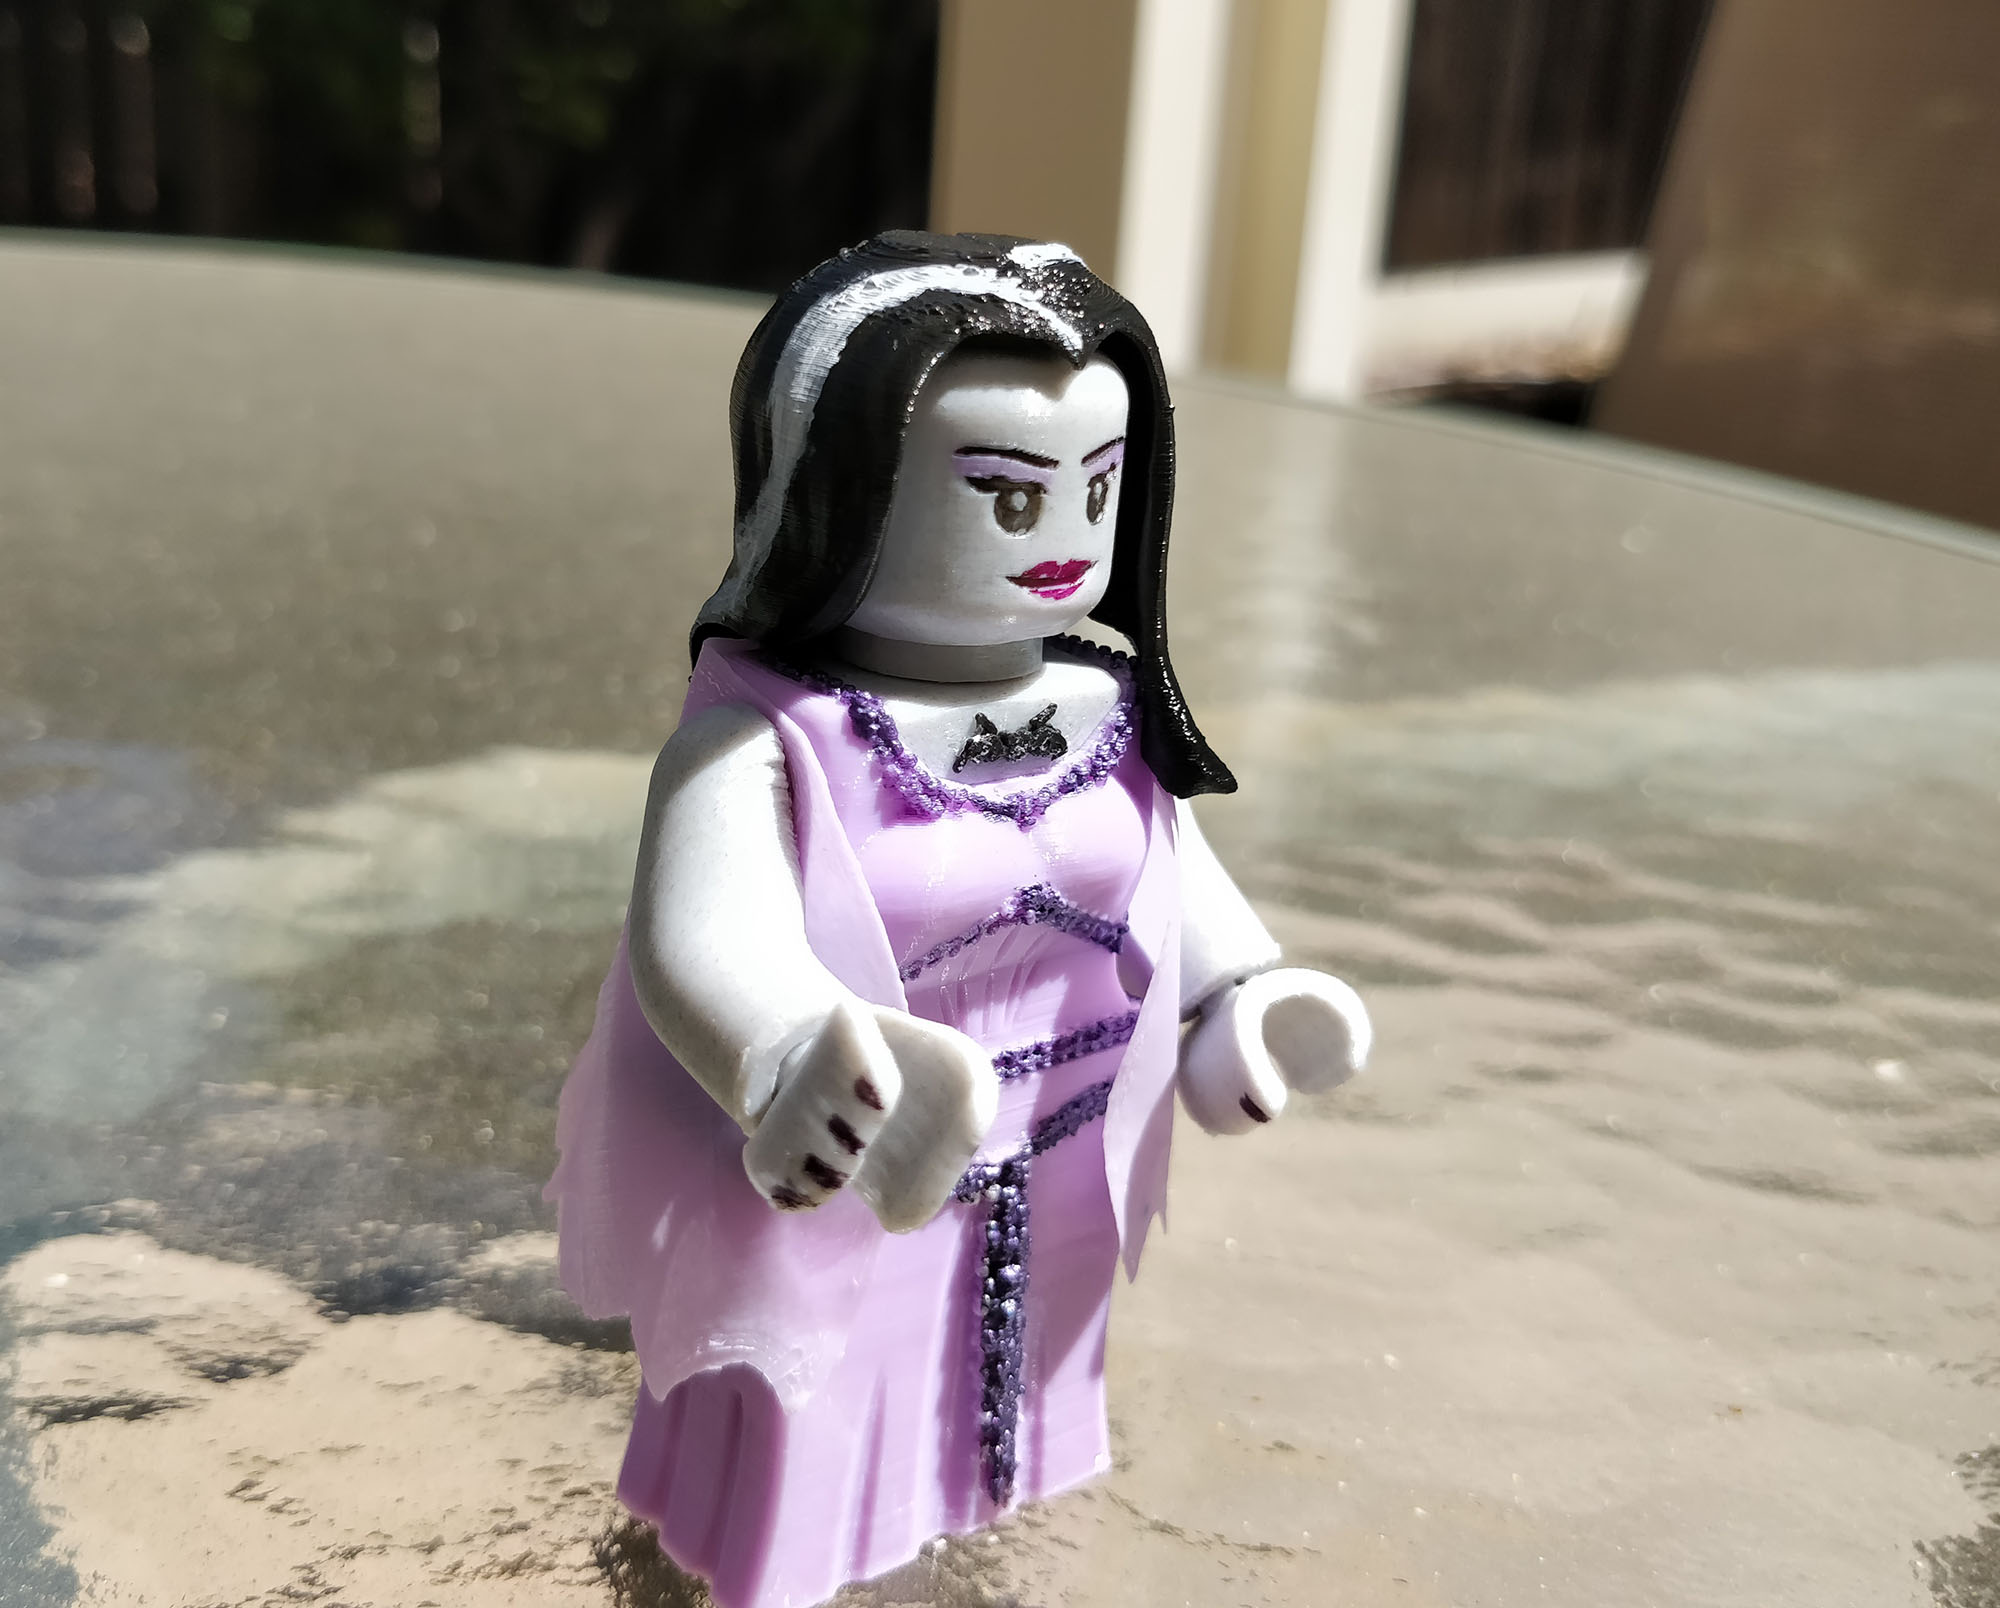 Lego Munsters Lily 2x